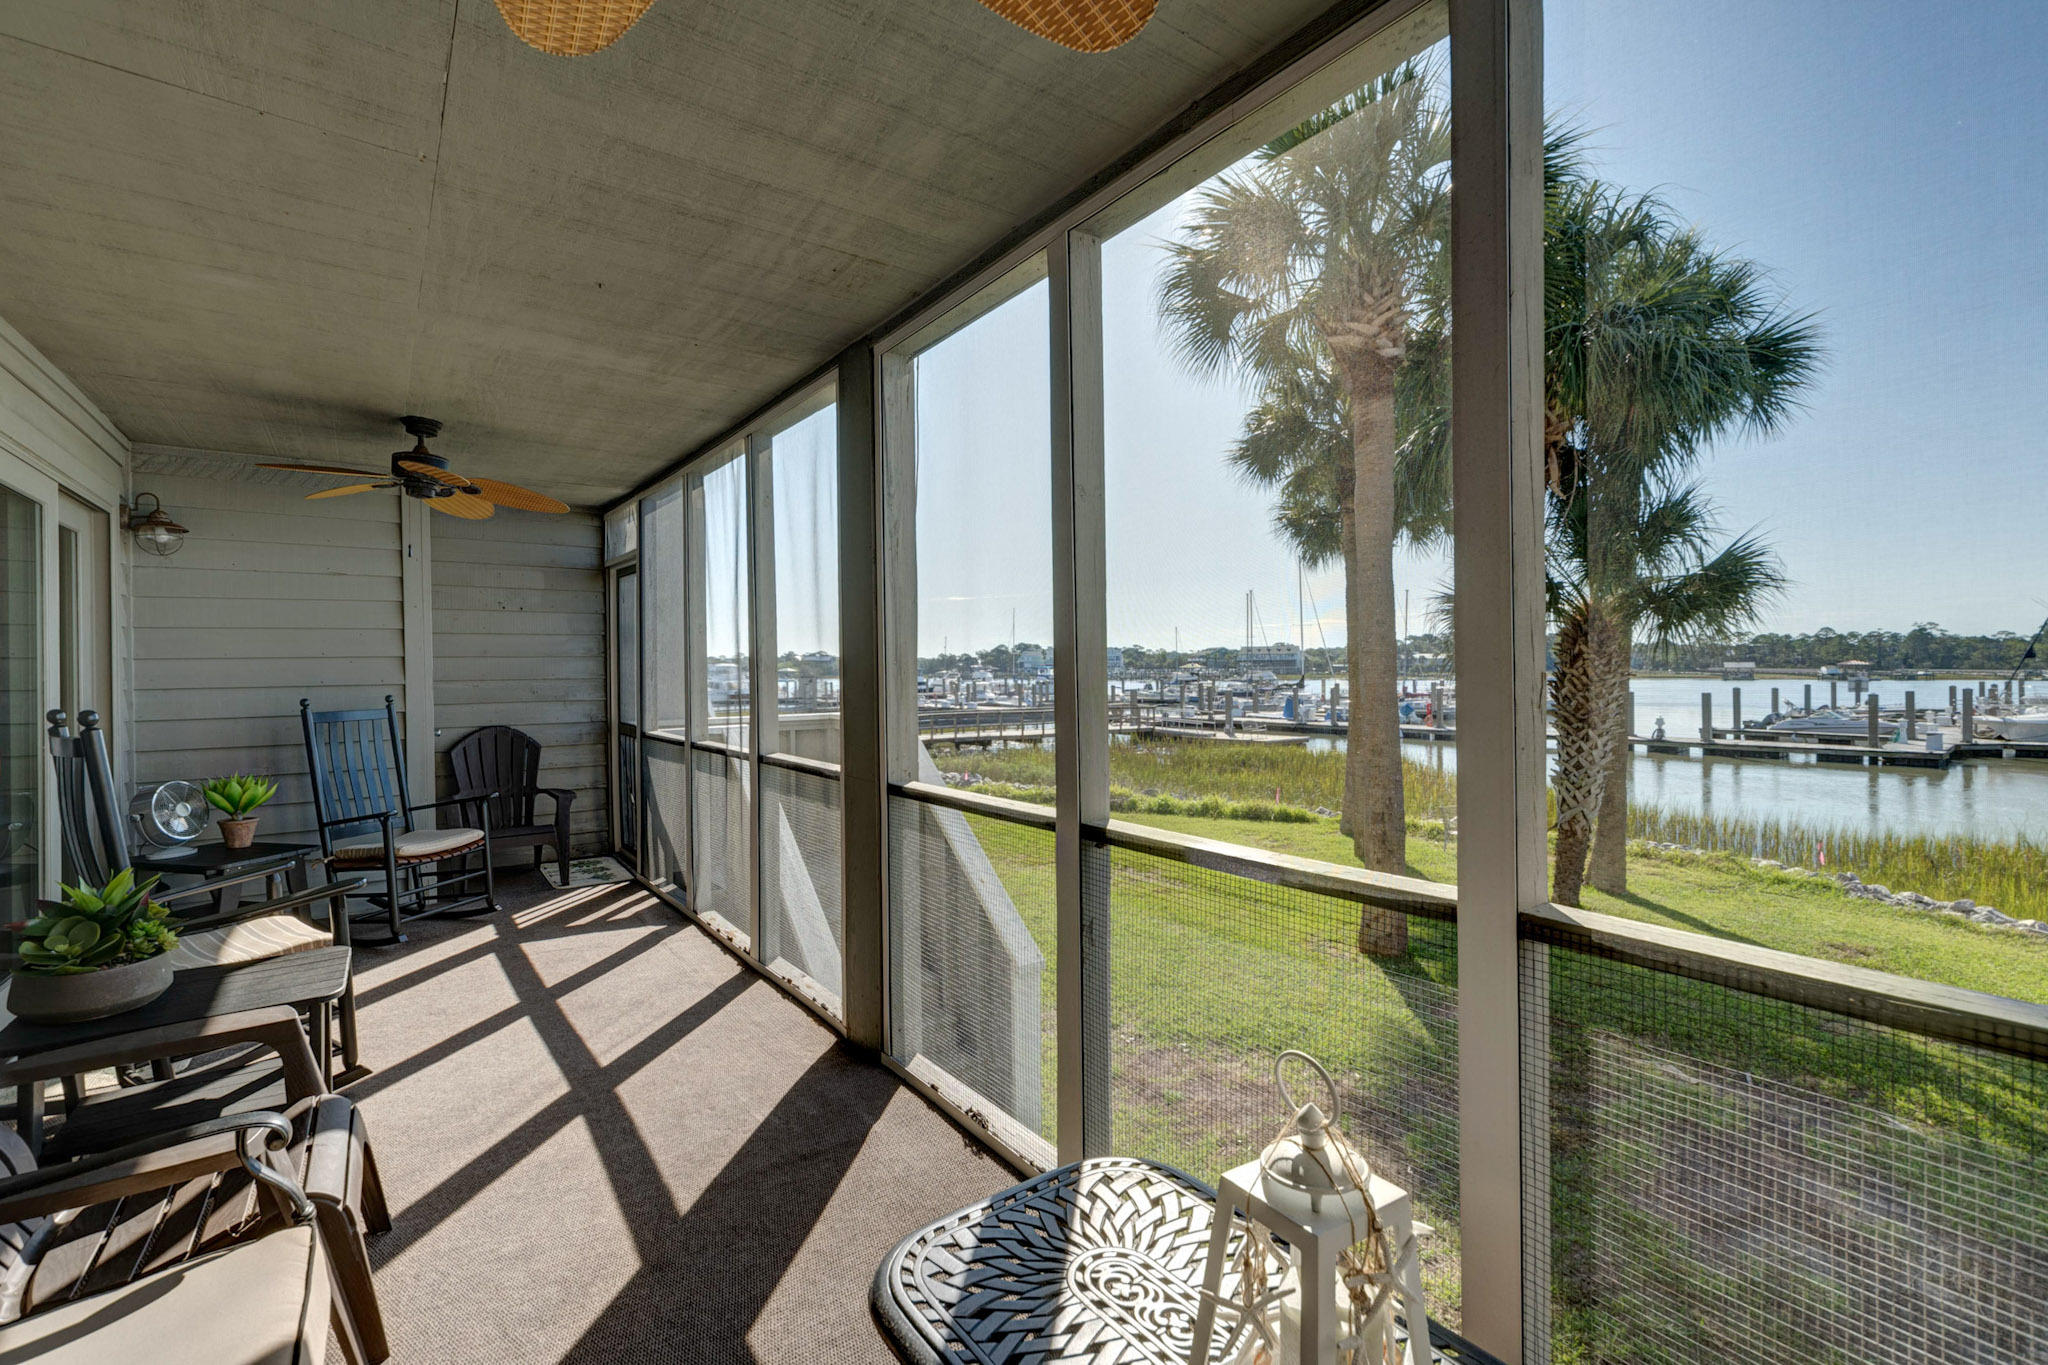 Mariners Cay Homes For Sale - 76 Mariners Cay, Folly Beach, SC - 18